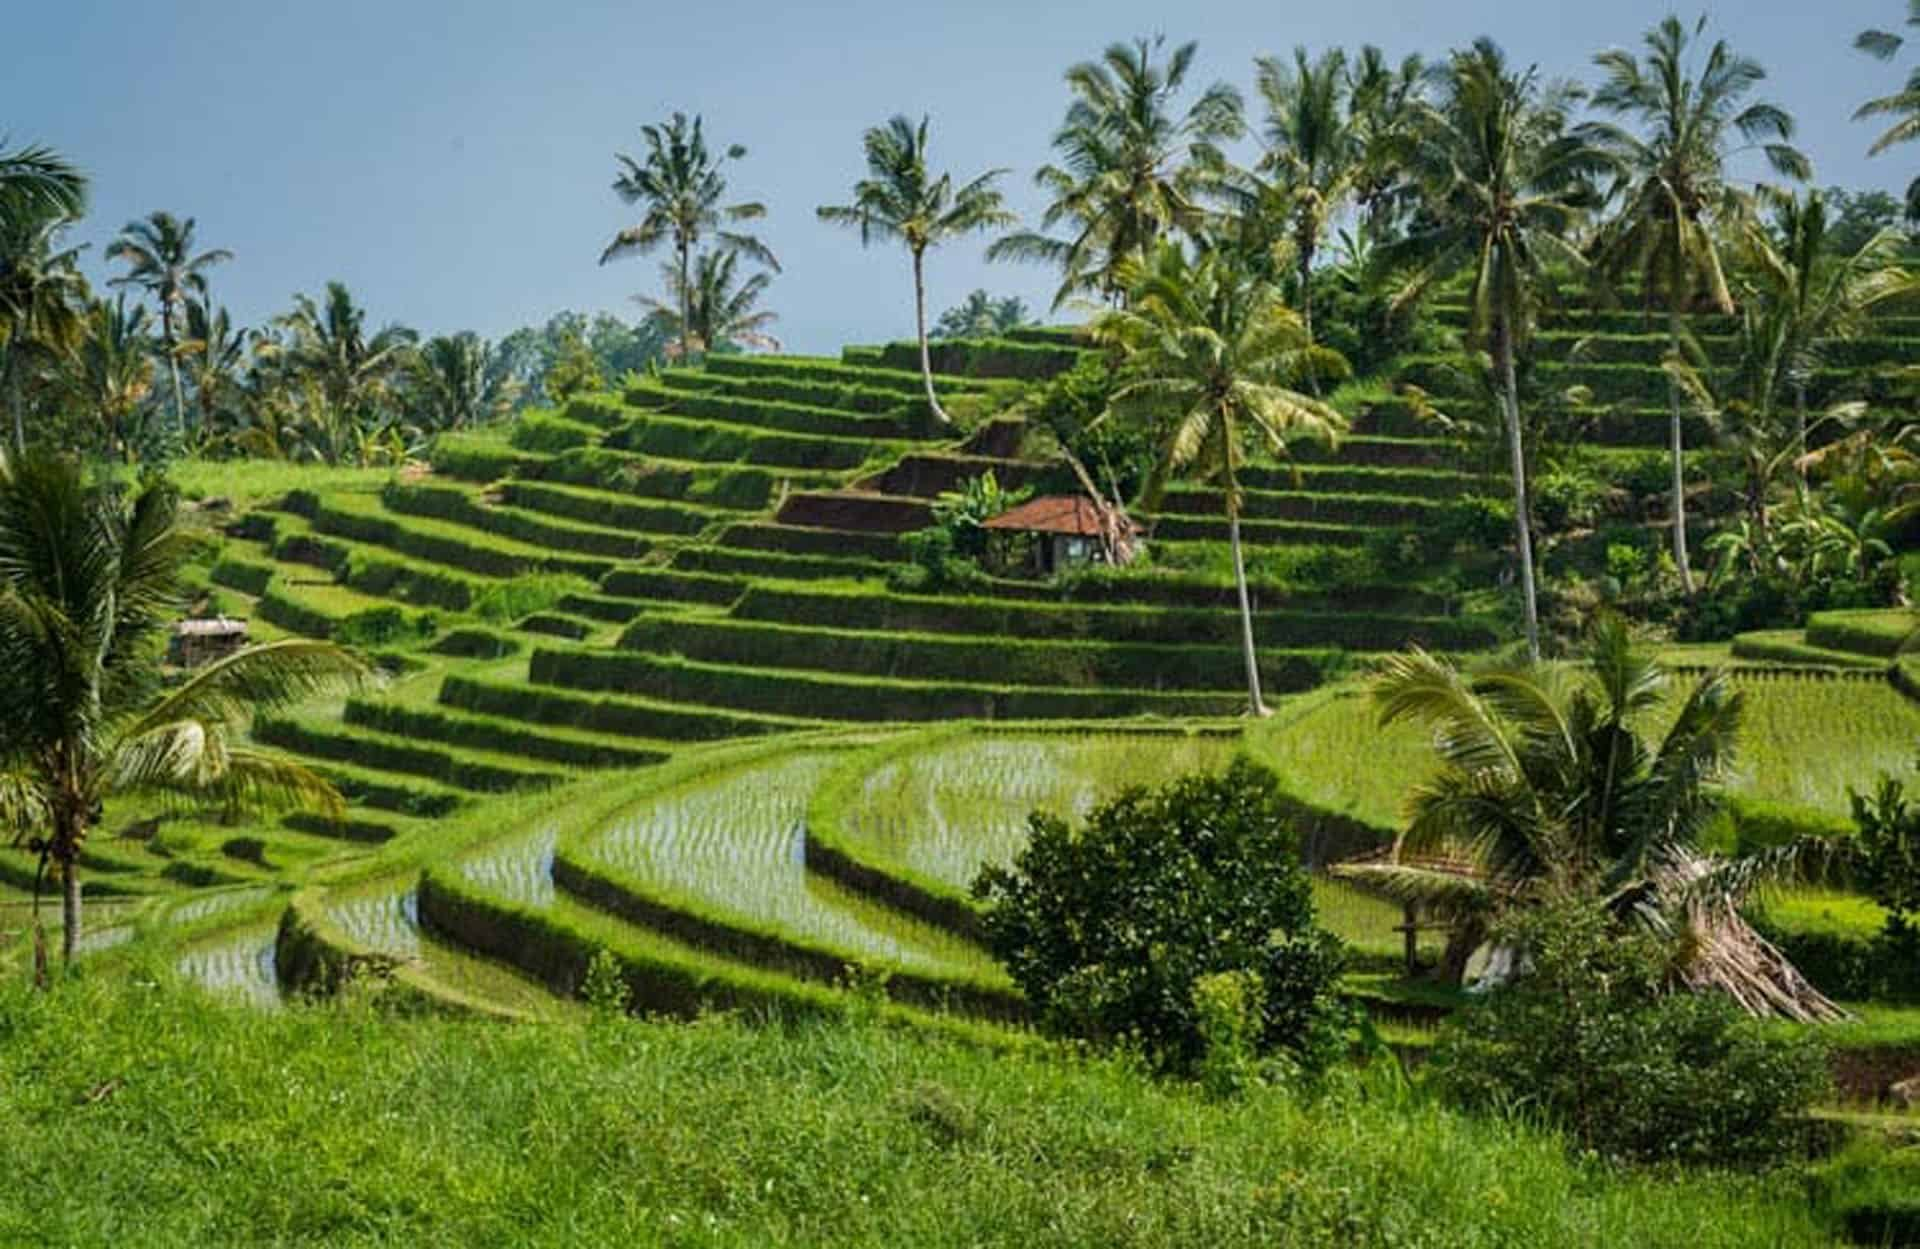 The Best Things to do in Bali - A local's guide and Insider Tips